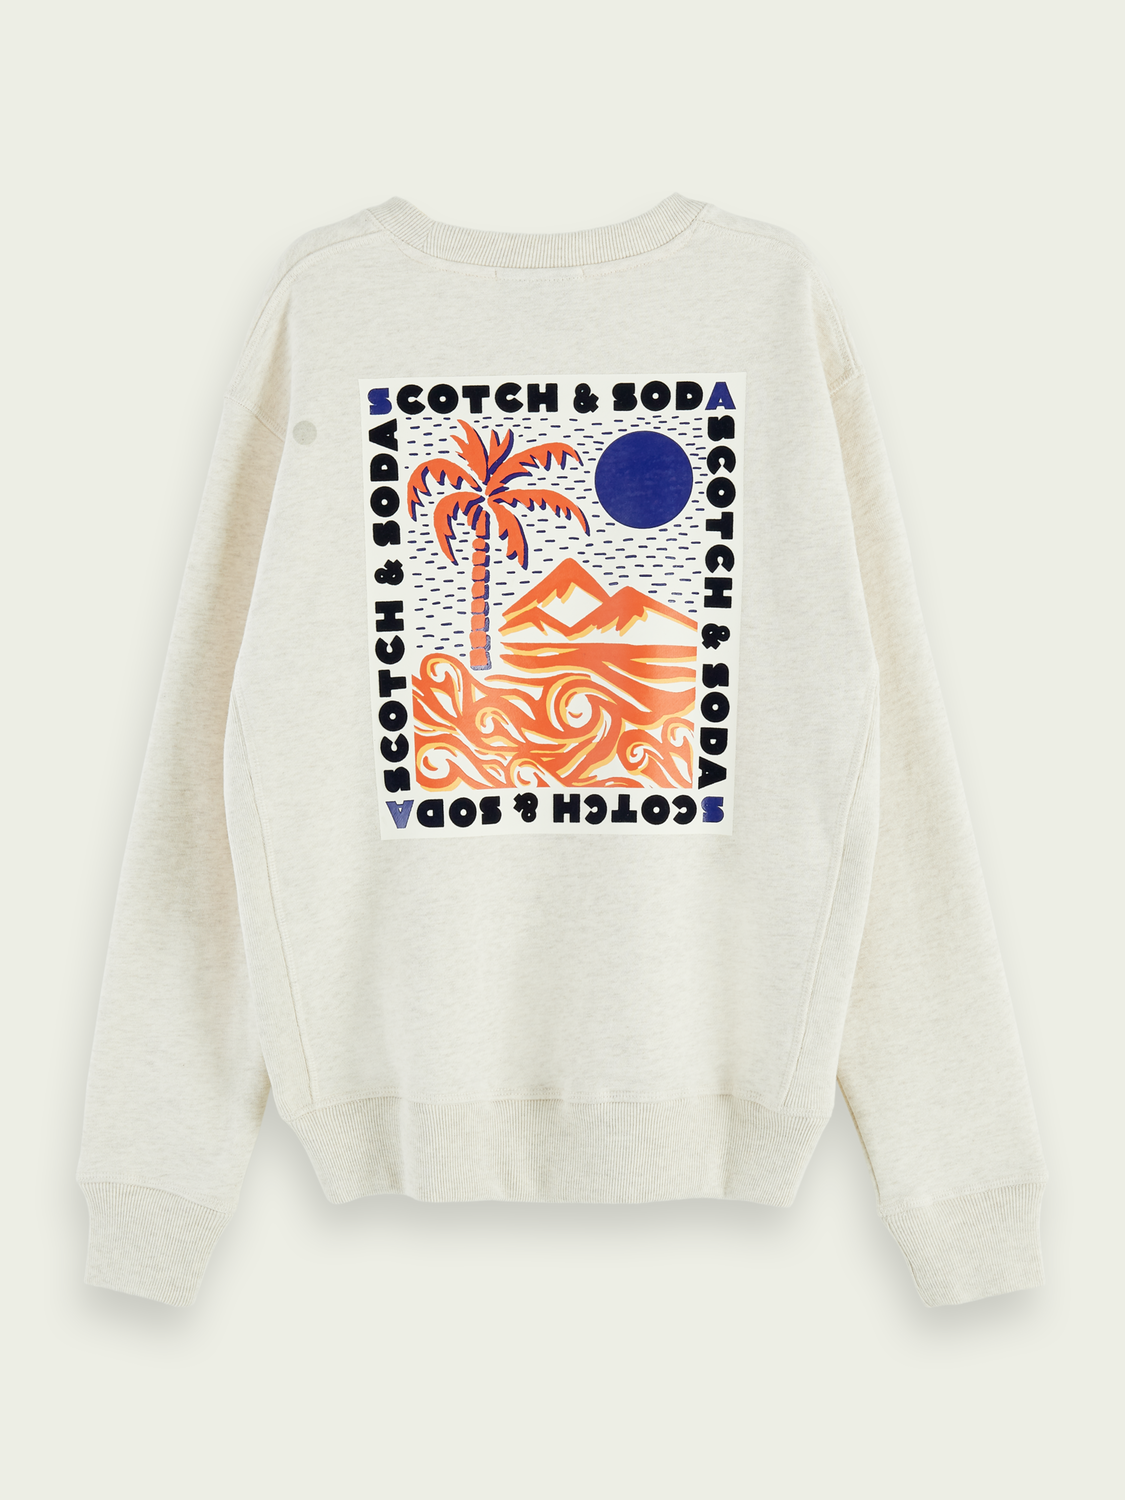 Damen Langärmliges Sweatshirt mit Artwork